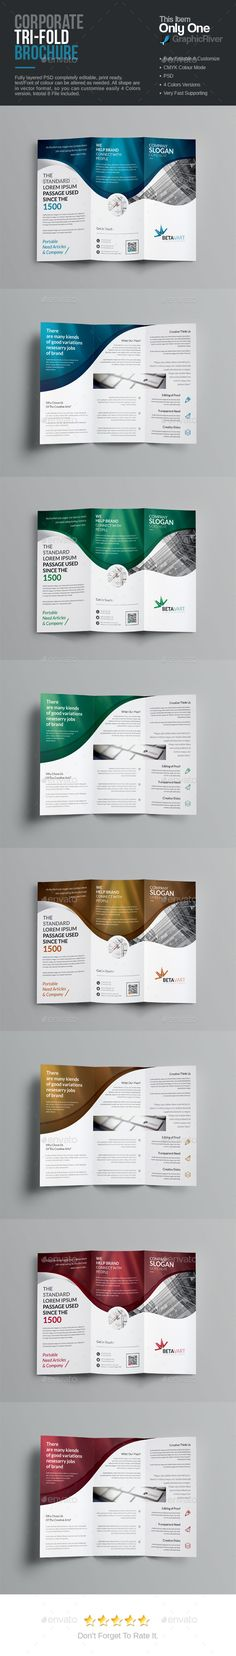 A Z-fold brochure design is comparatively similar to that of tri - psd brochure design inspiration